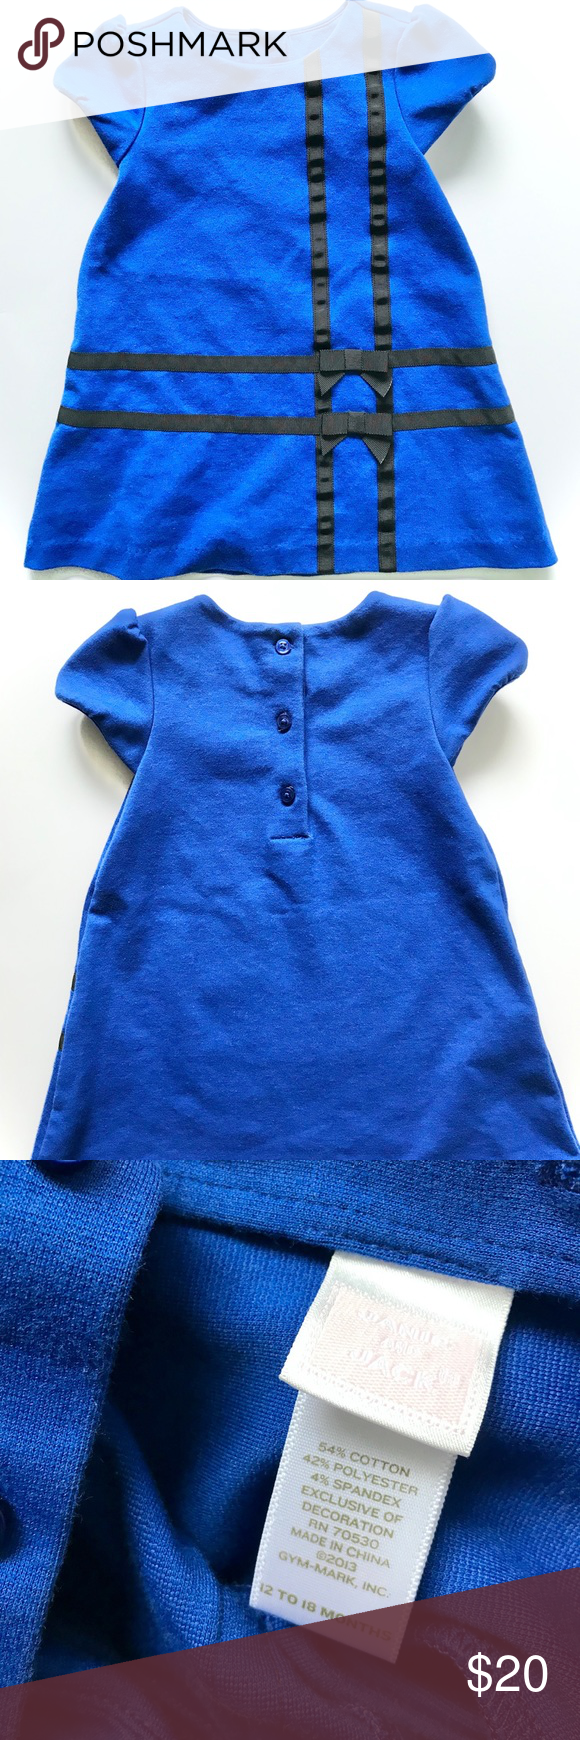 Janie and Jack, blue & black 12 month party dress. Janie and Jack party dress. New condition but without tags. 12 month dress. Janie and Jack Dresses Casual #fashiondresses